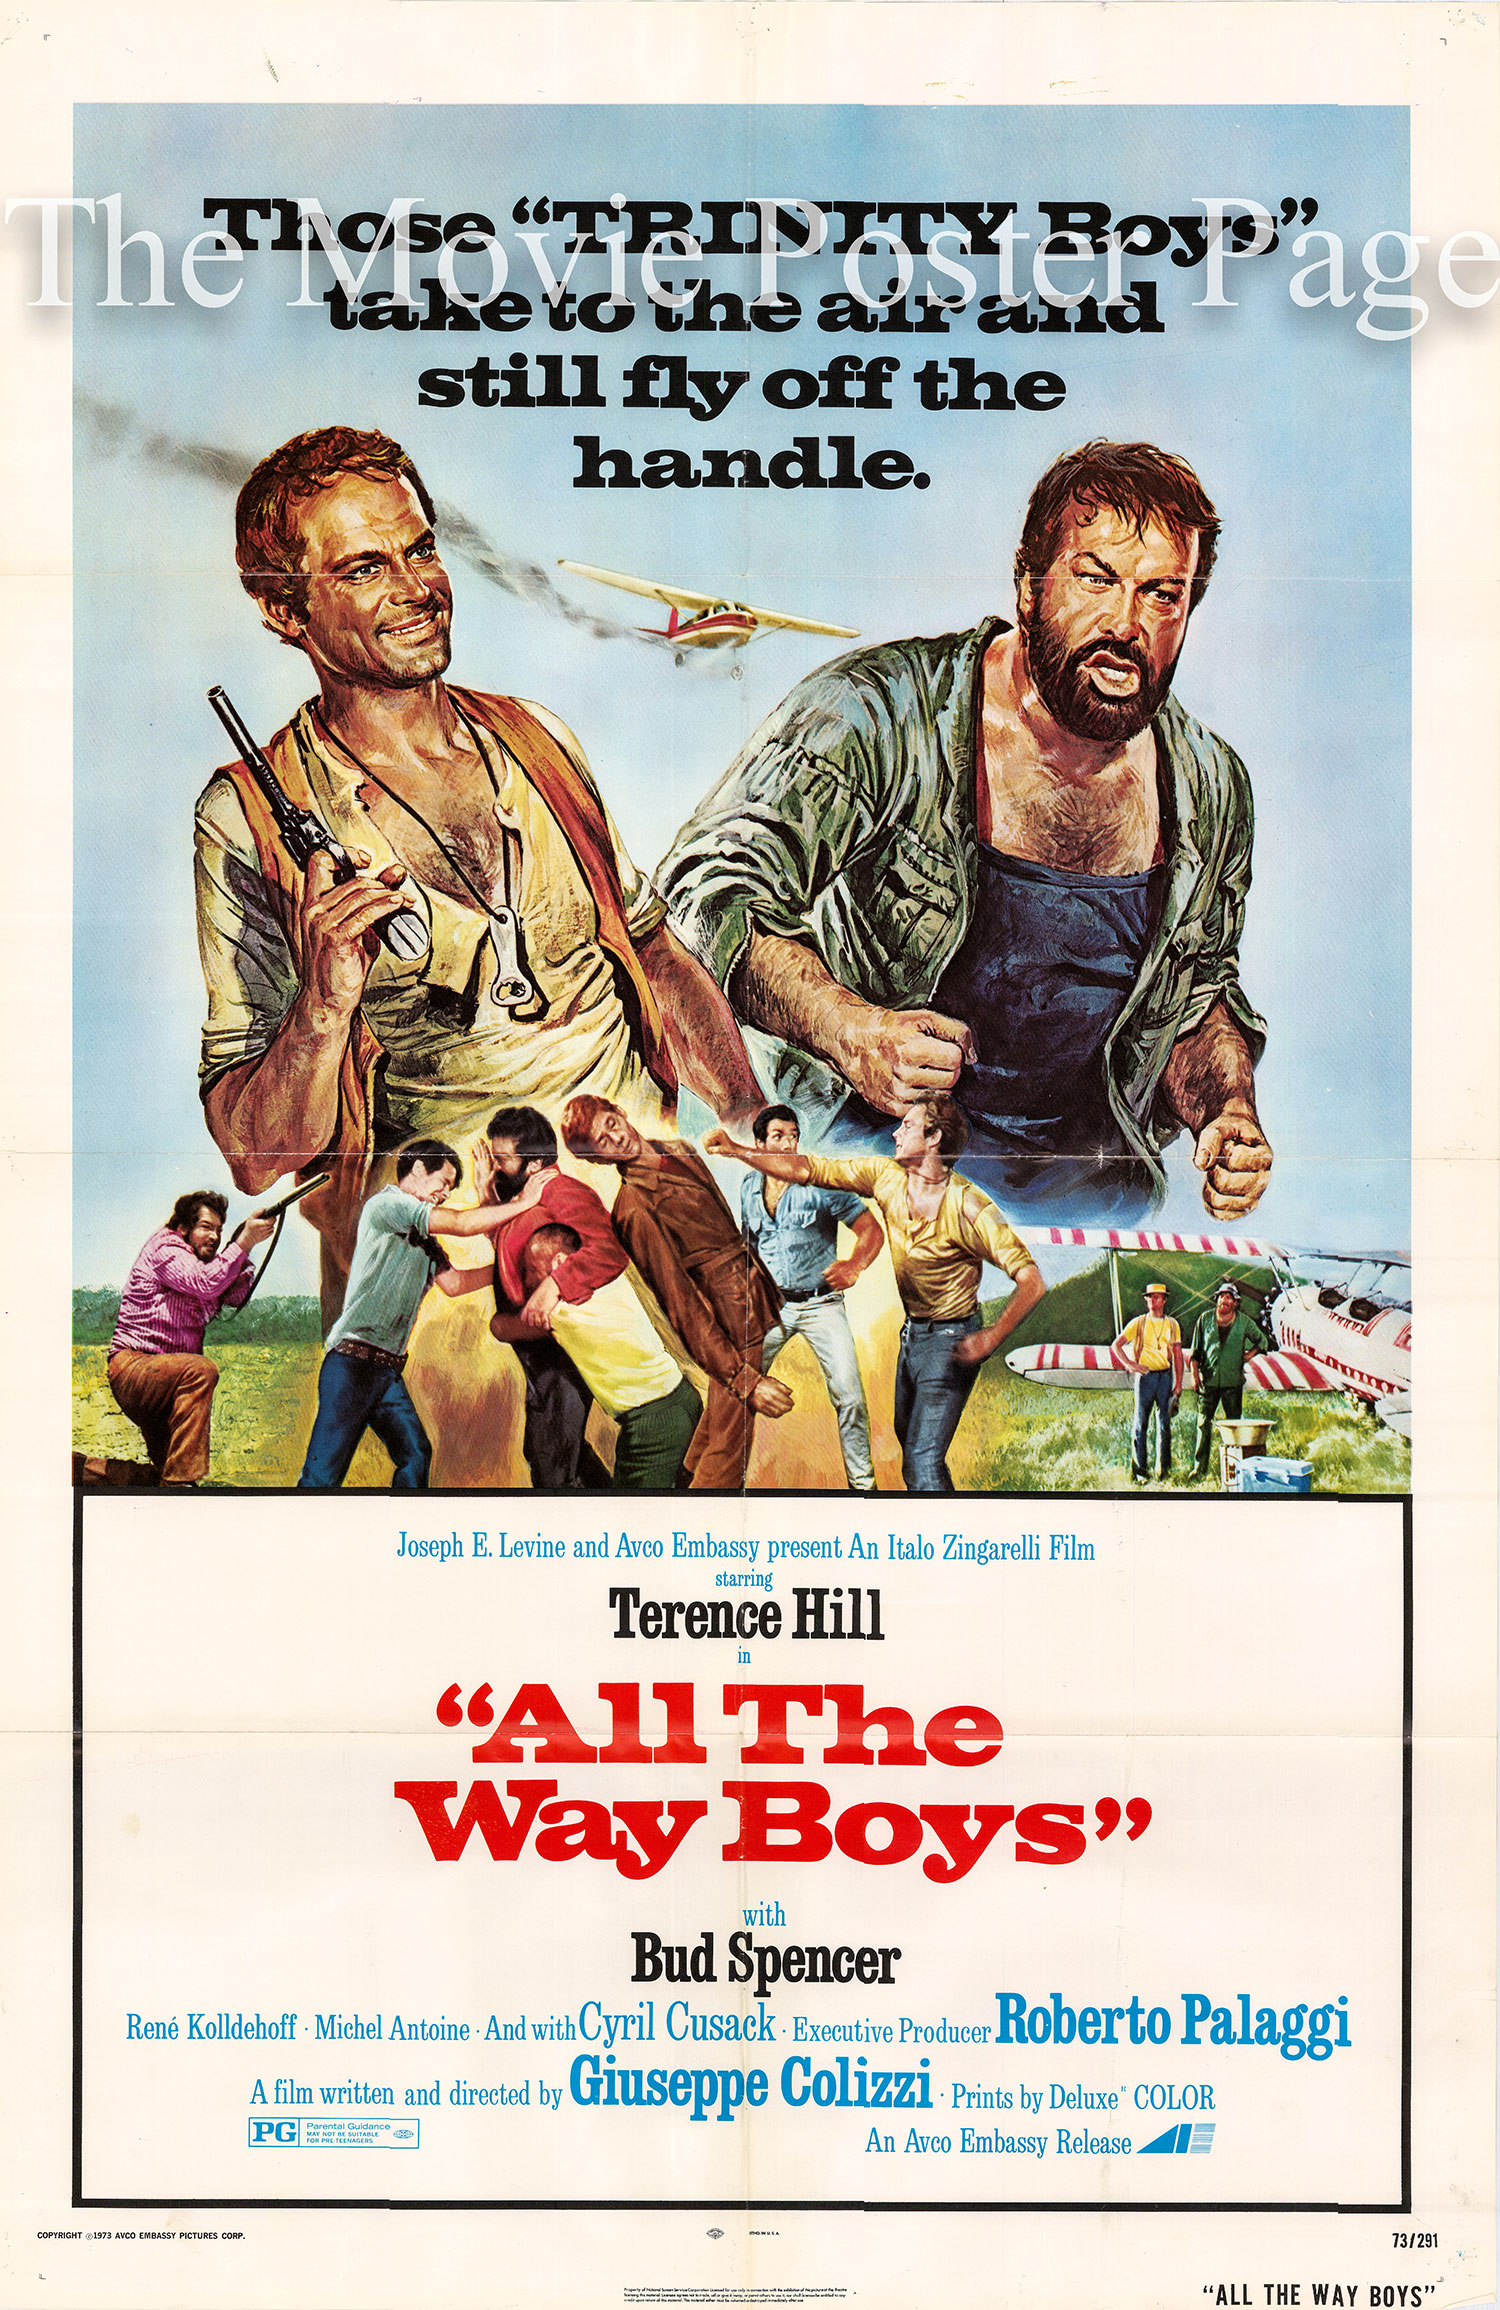 Pictured is a US promotional poster for the 1973 Giuseppe Colizzi film All the Way Boys starring Terence Hill.